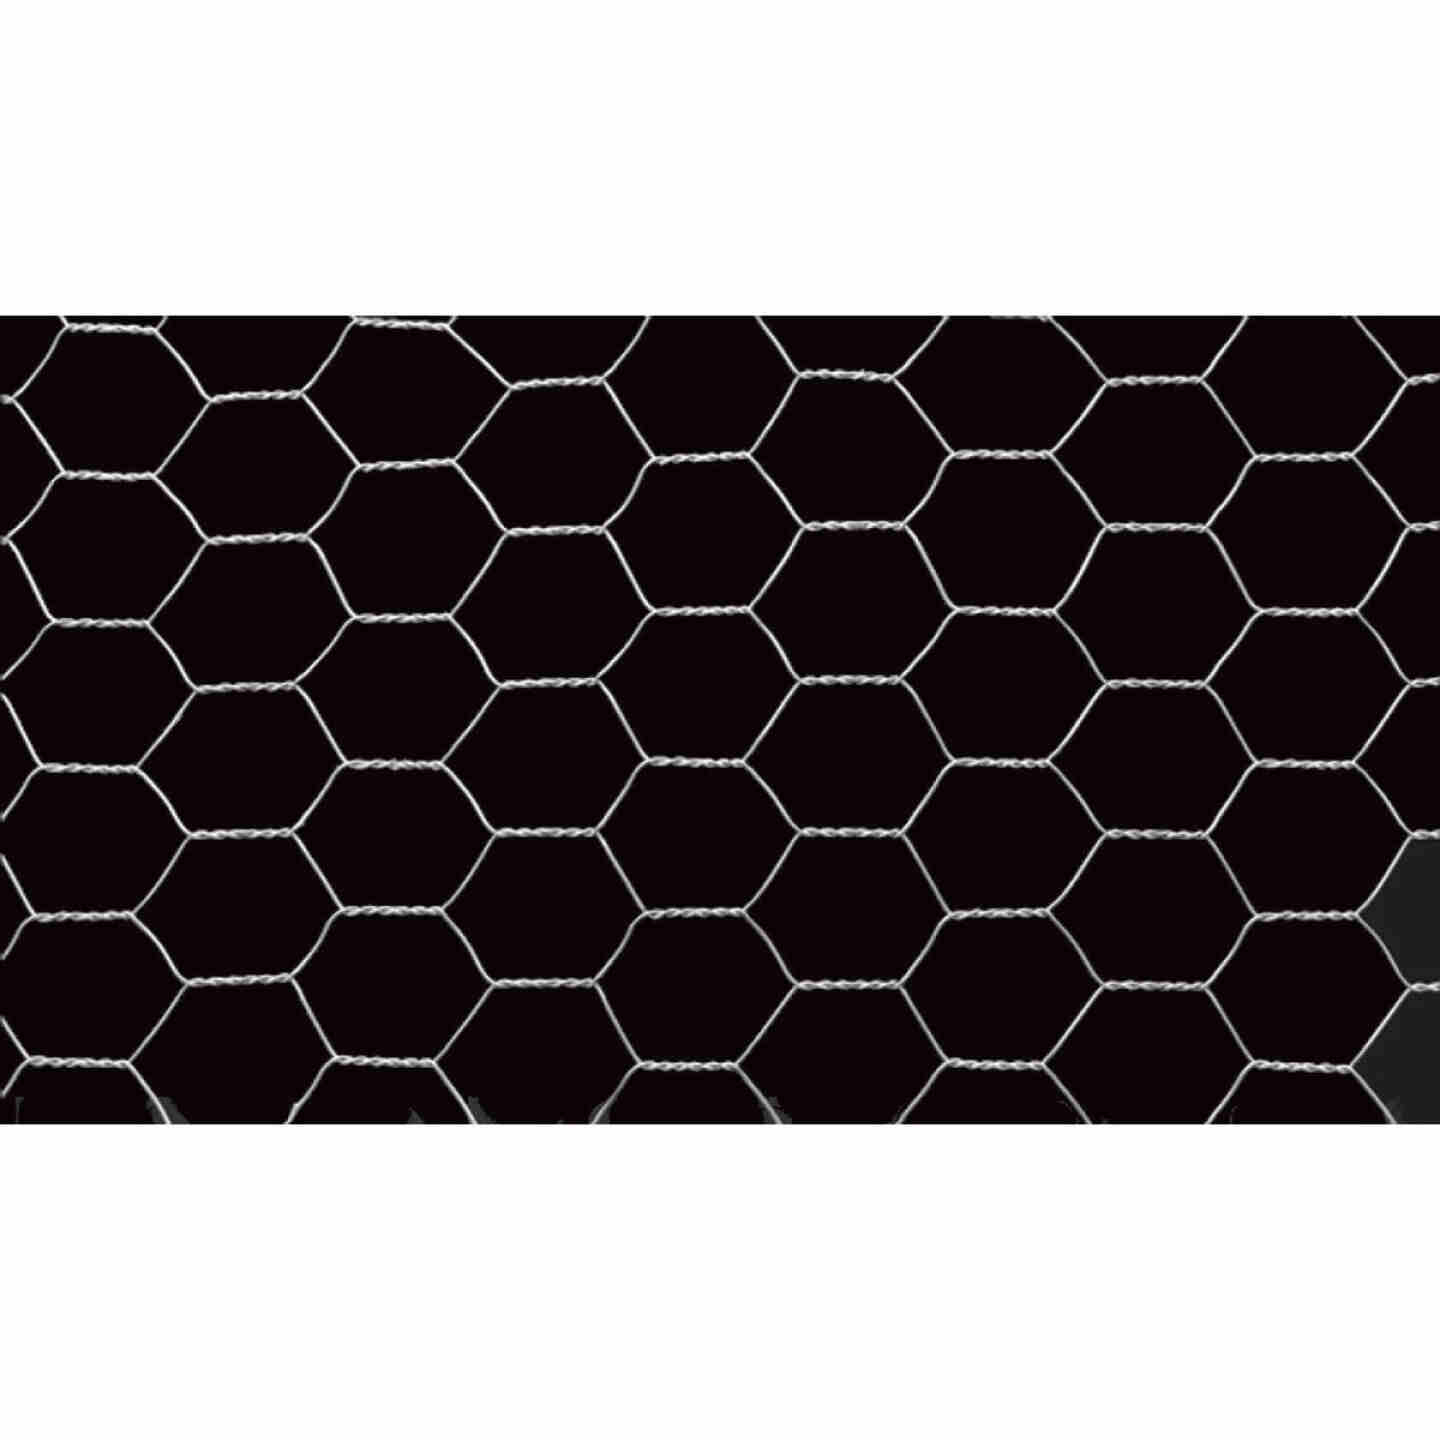 Do it 2 In. x 48 In. H. x 25 Ft. L. Hexagonal Wire Poultry Netting Image 3